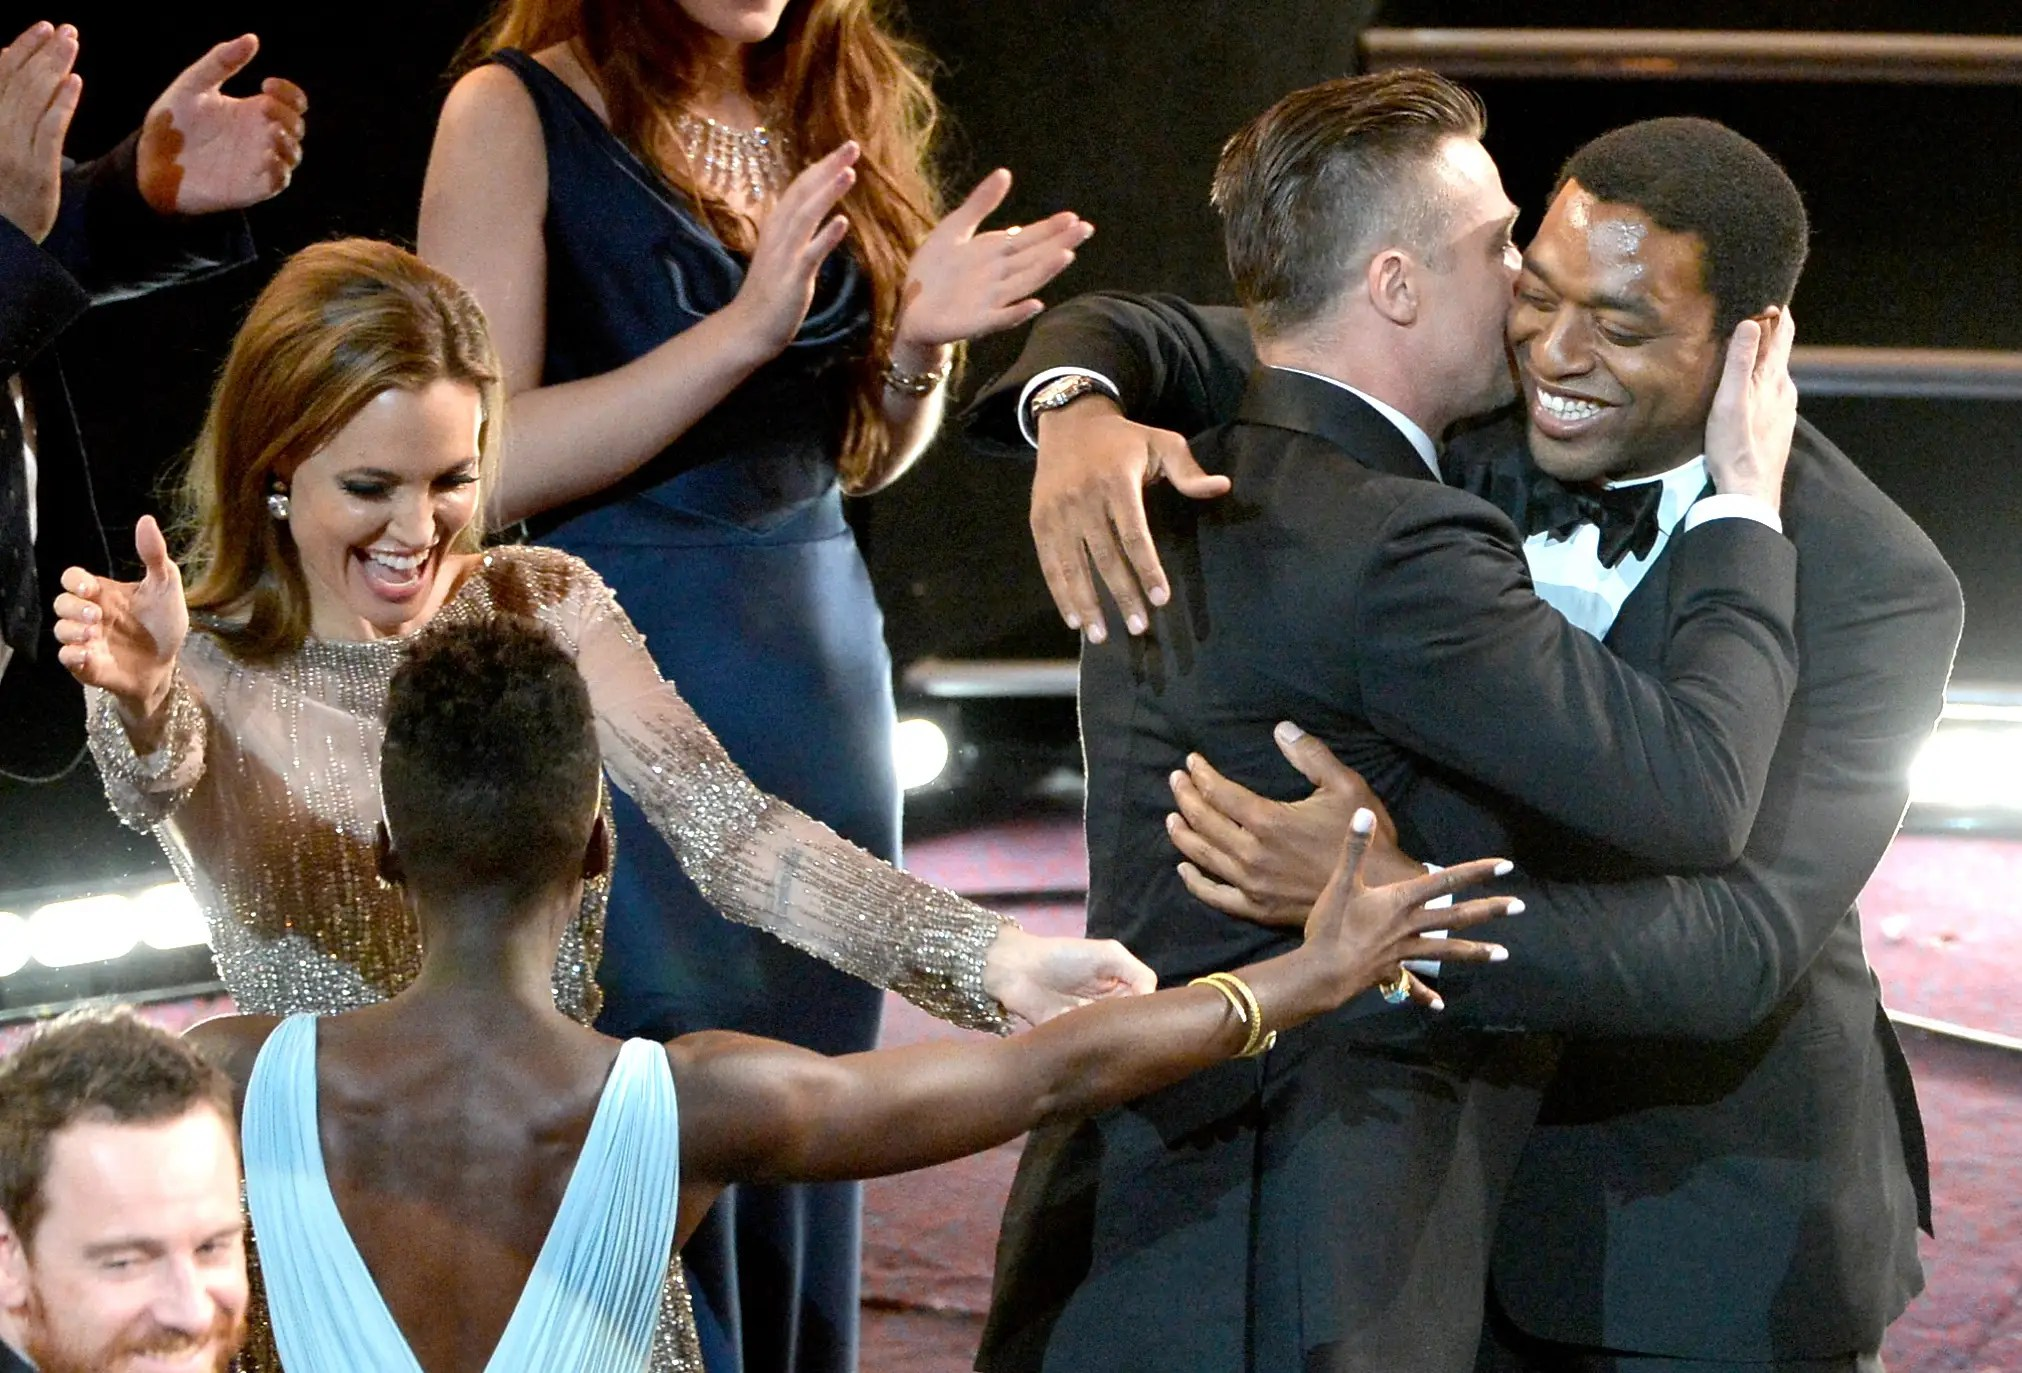 Angelina Jolie and Brad Pitt gave the sweetest embraces to Oscar nominees Nyong'o and Chiwetel Ejiofor.